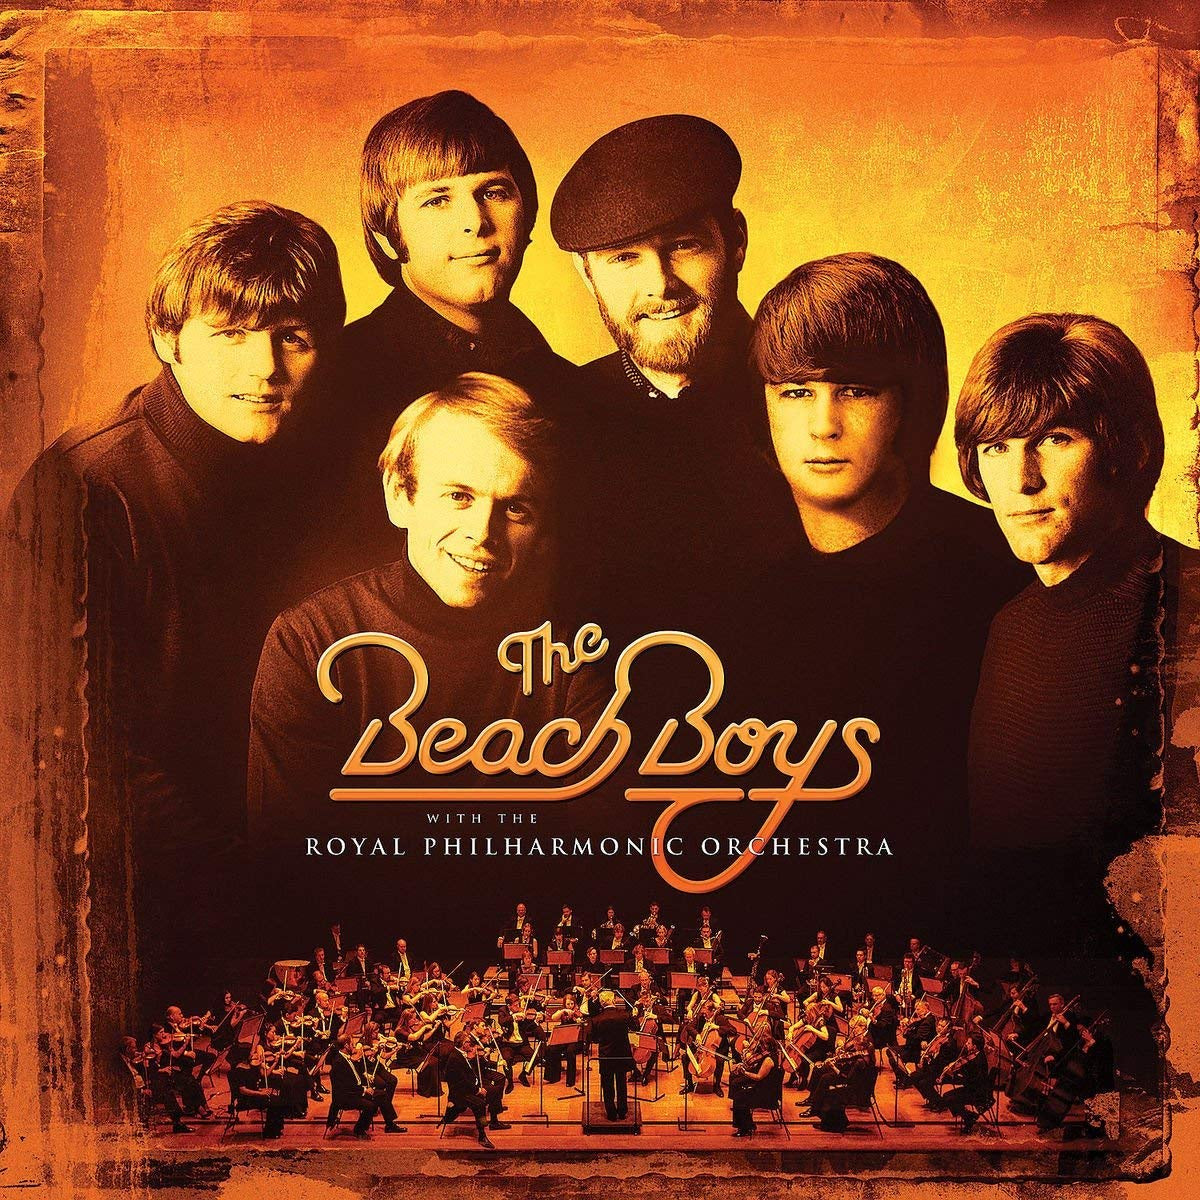 The Beach Boys - With The Royal Philharmonic Orchestra - New Vinyl 2 Lp 2018 UMe 180gram Pressing with Gatefold Jacket - Pop Rock